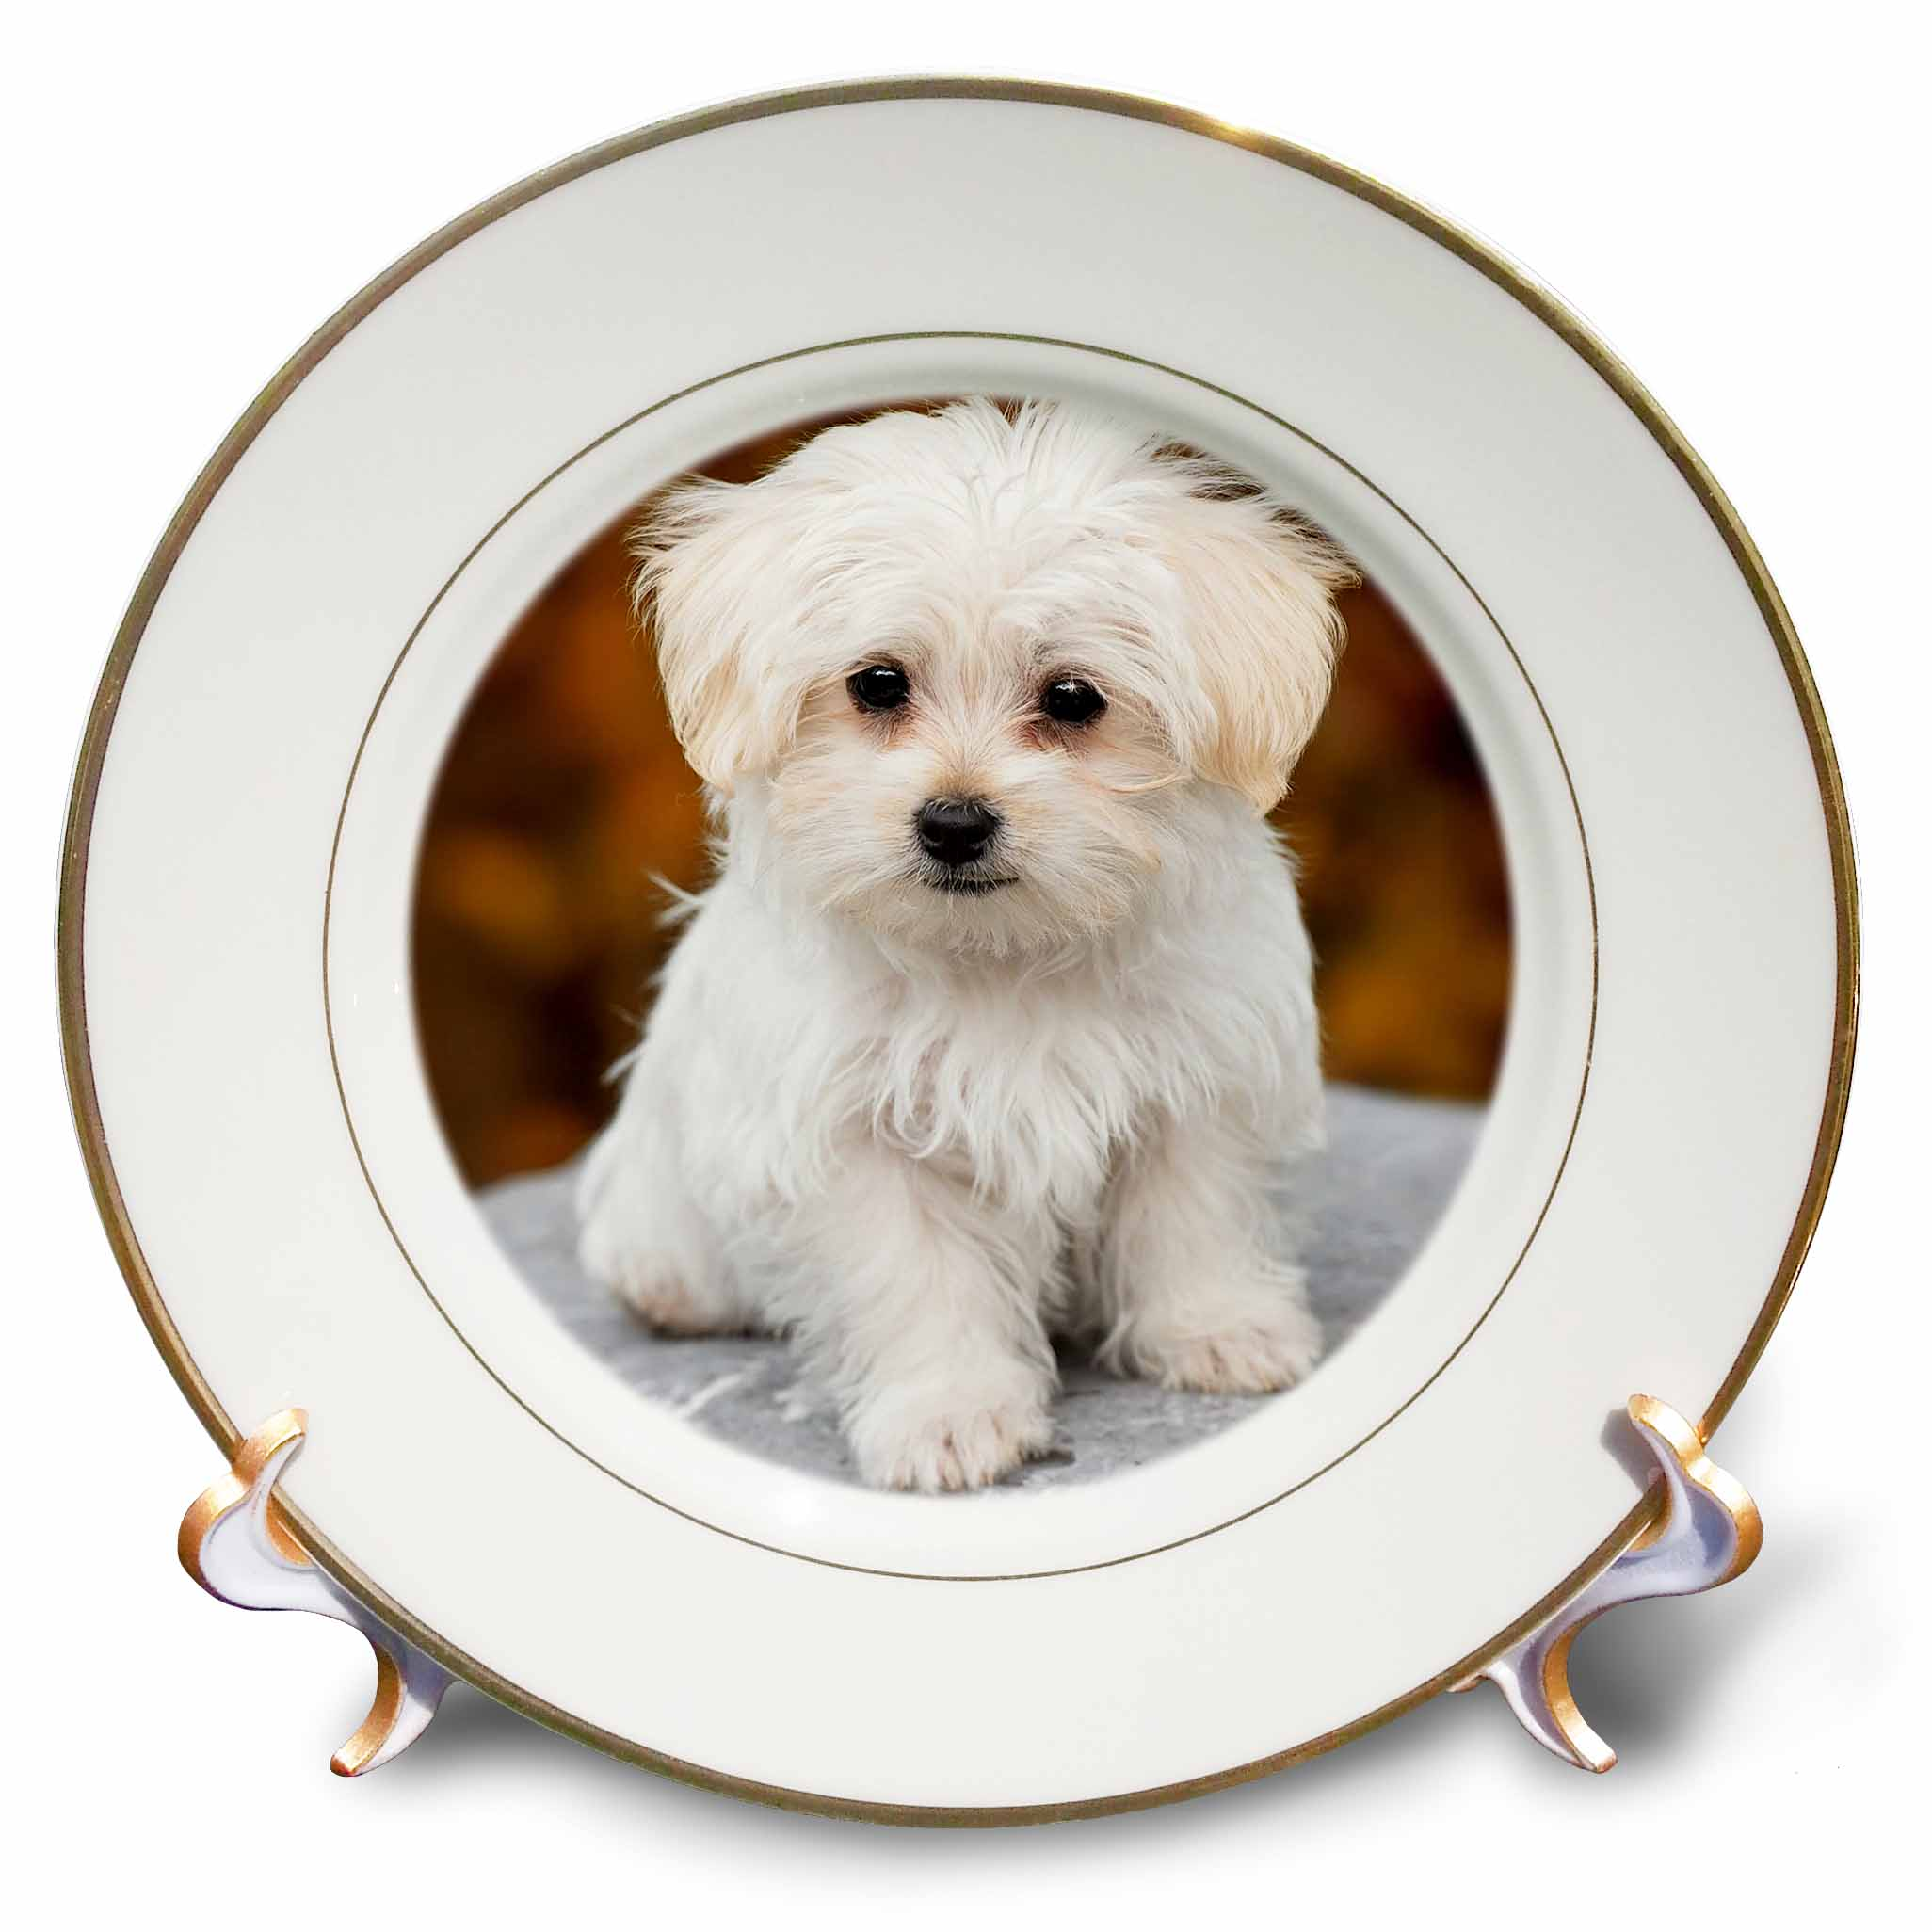 3dRose Maltese. Cute little puppy. Porcelain Plate, 8-inch by 3dRose